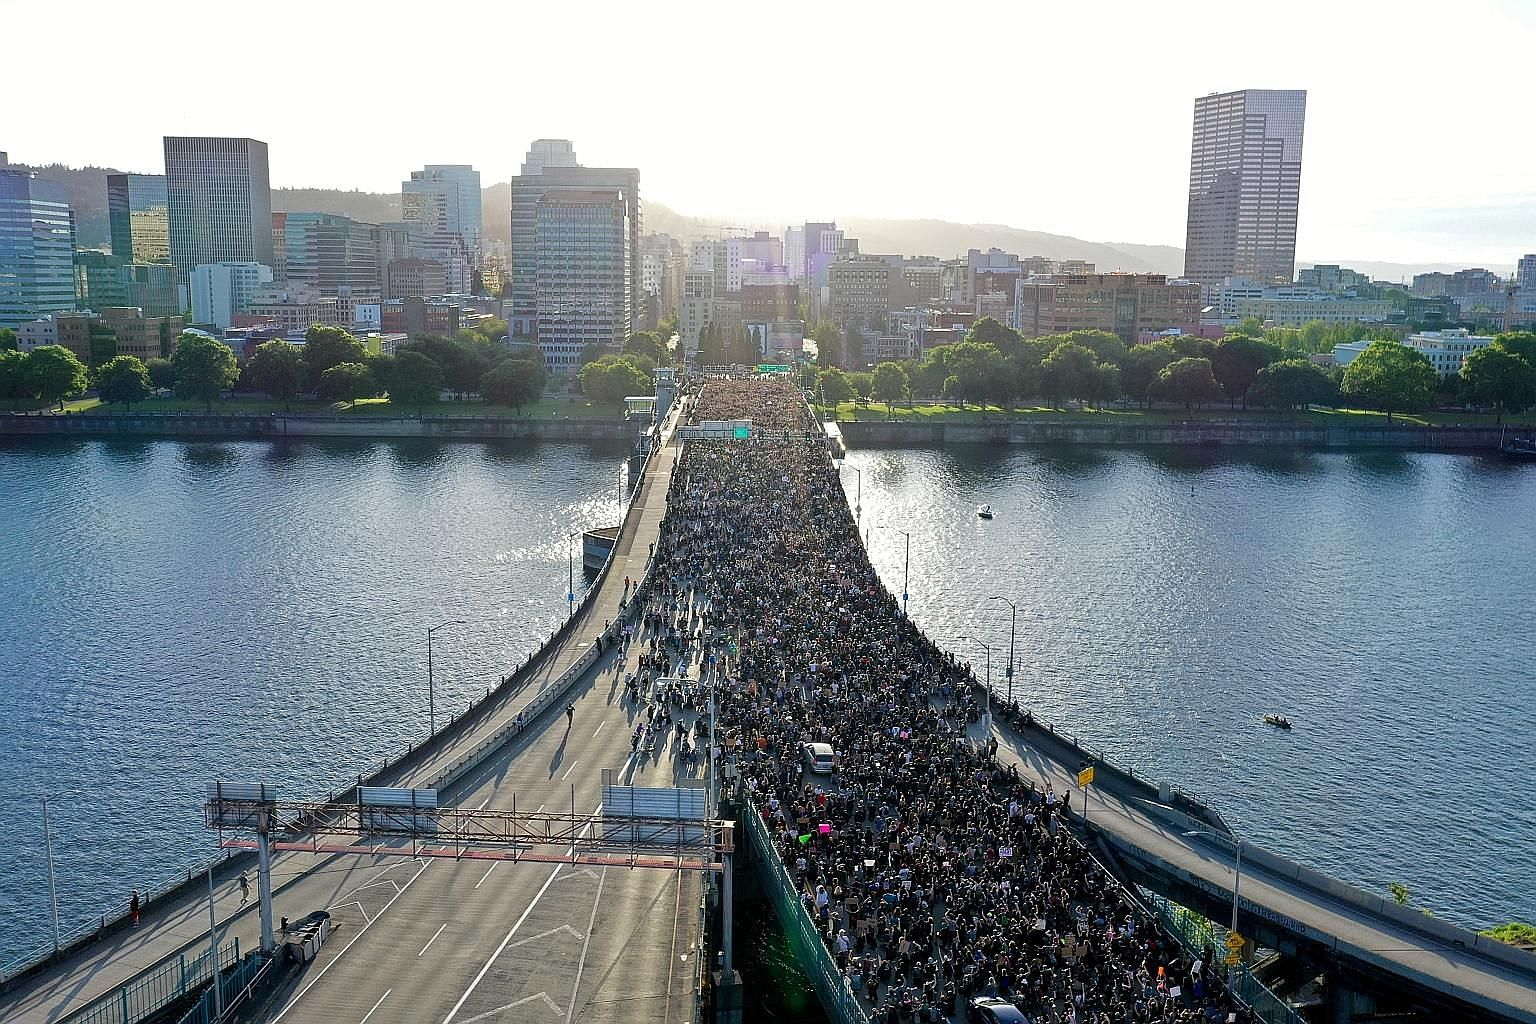 Protesters crossing Morrison Bridge in Portland, United States, on Wednesday, while rallying against the death of Mr George Floyd. PHOTO: REUTERS